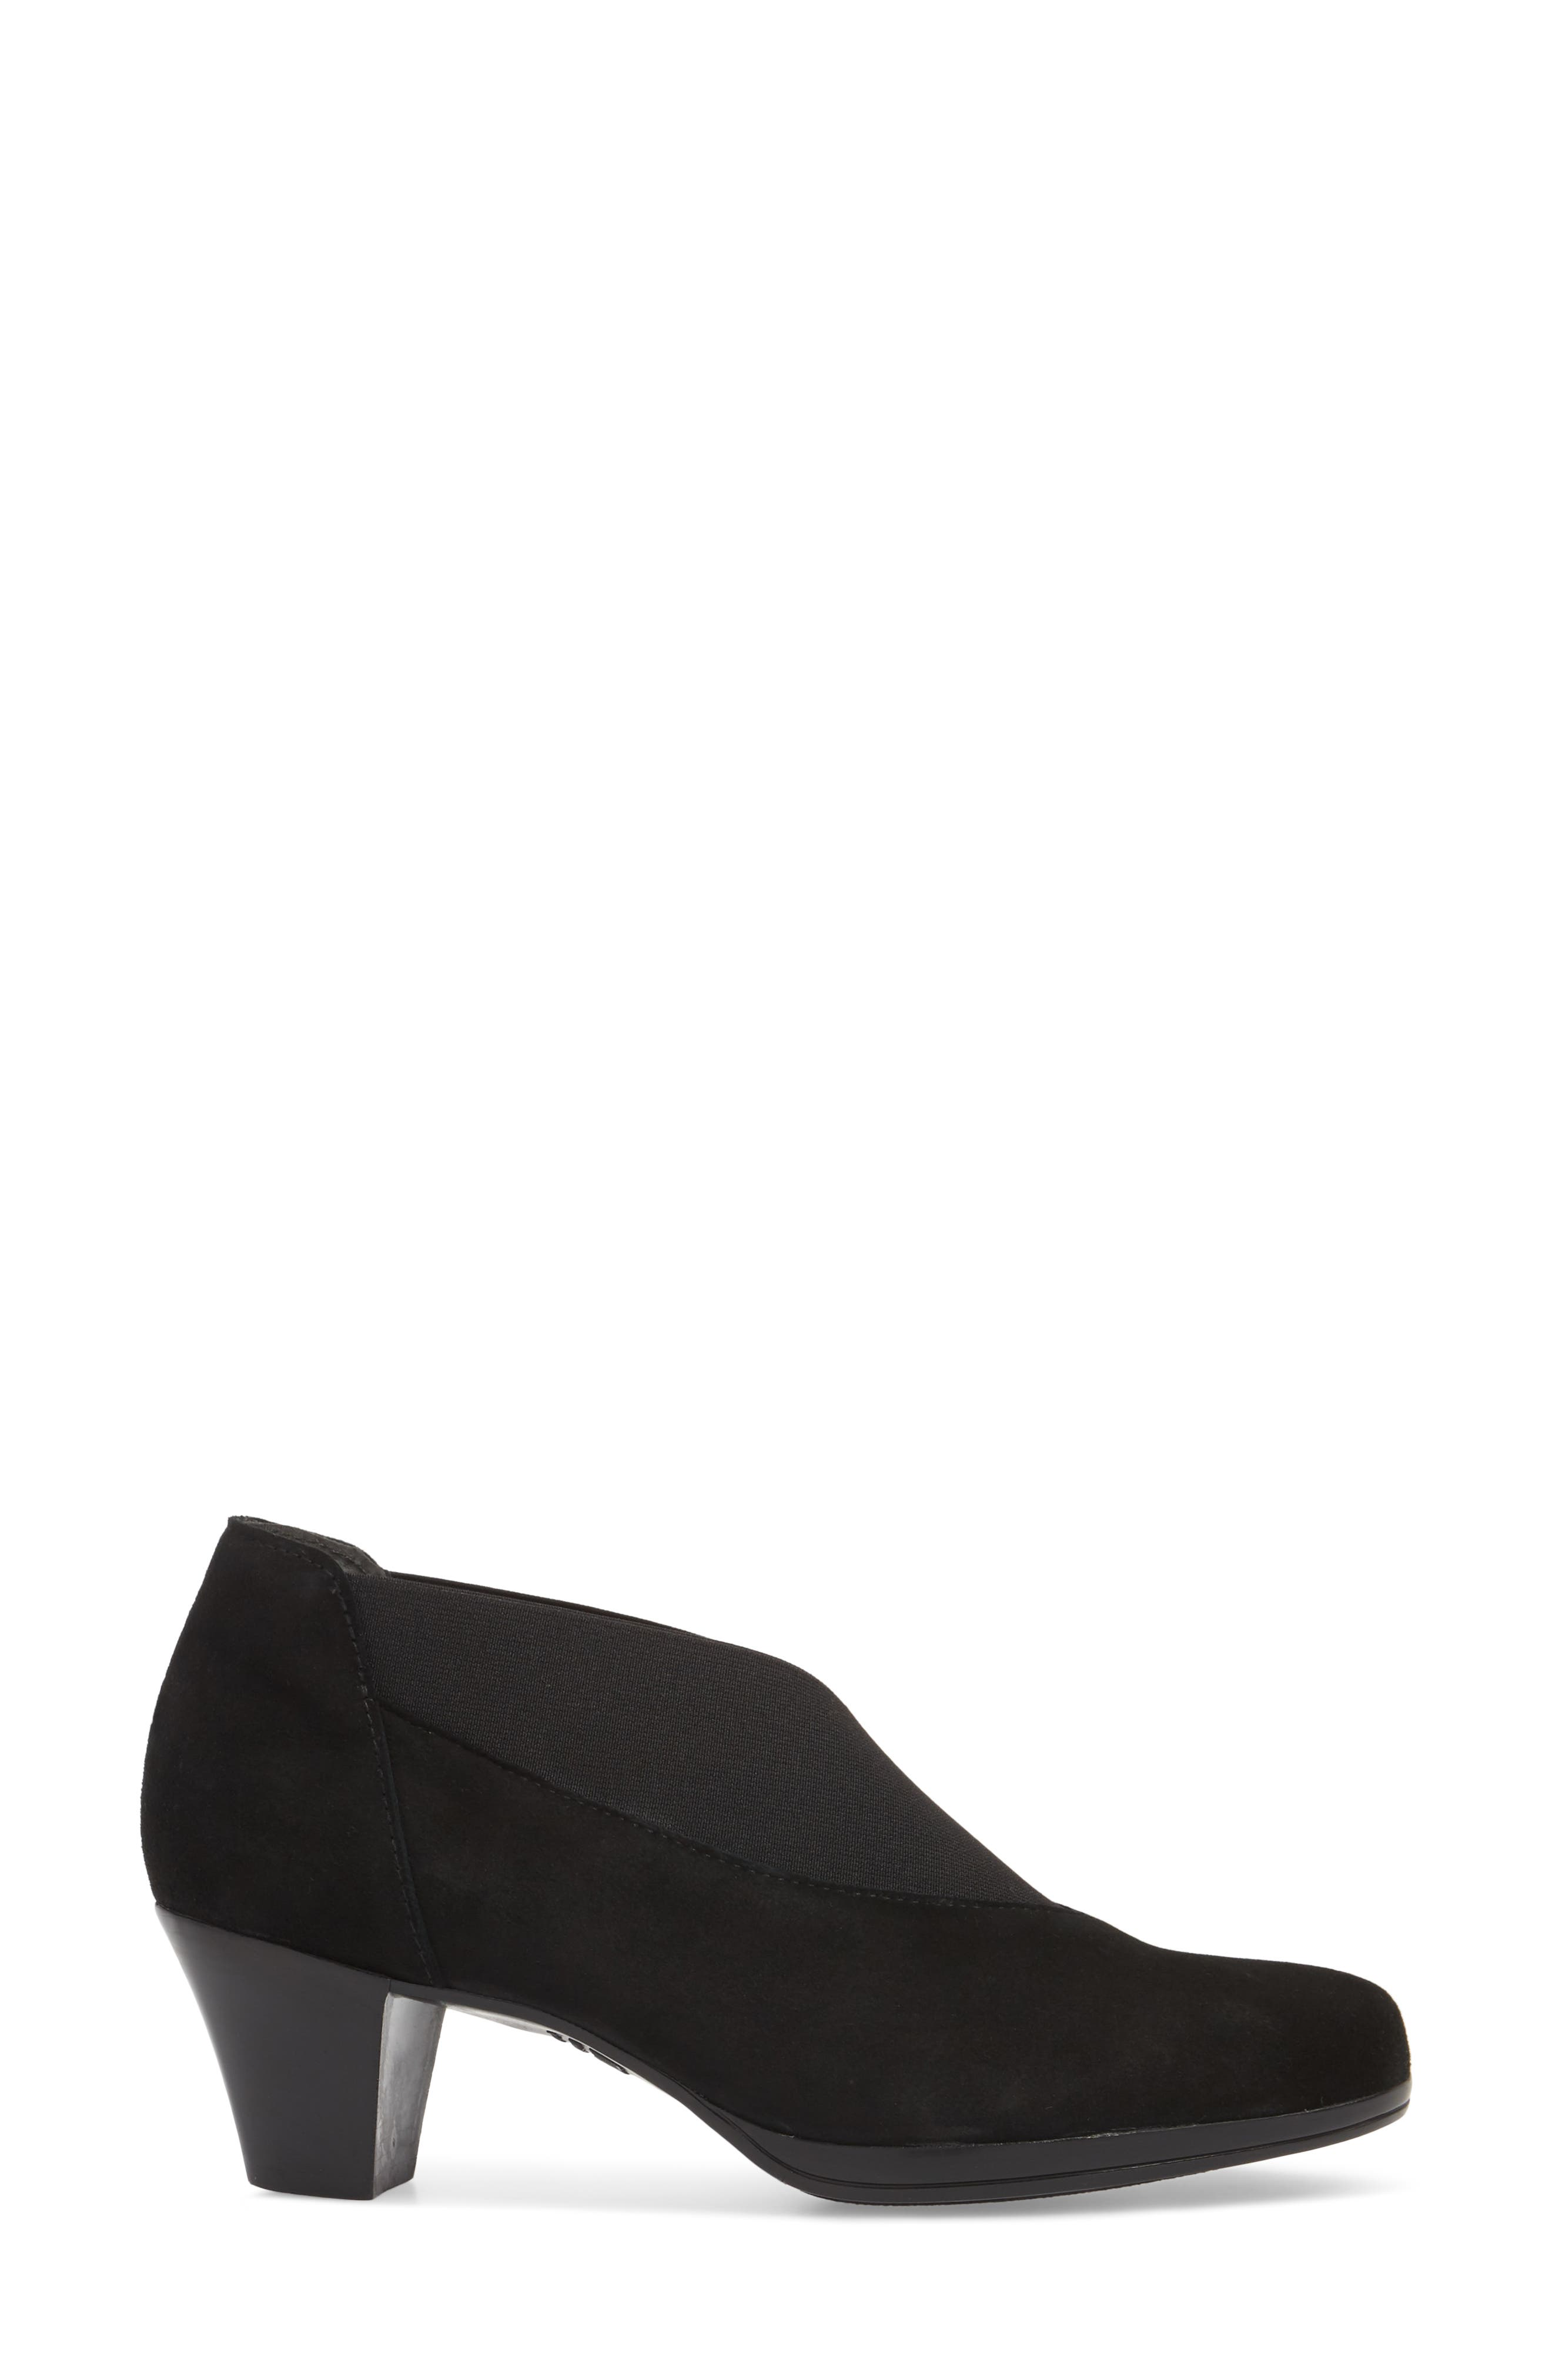 MUNRO, Francee Boot, Alternate thumbnail 3, color, BLACK SUEDE